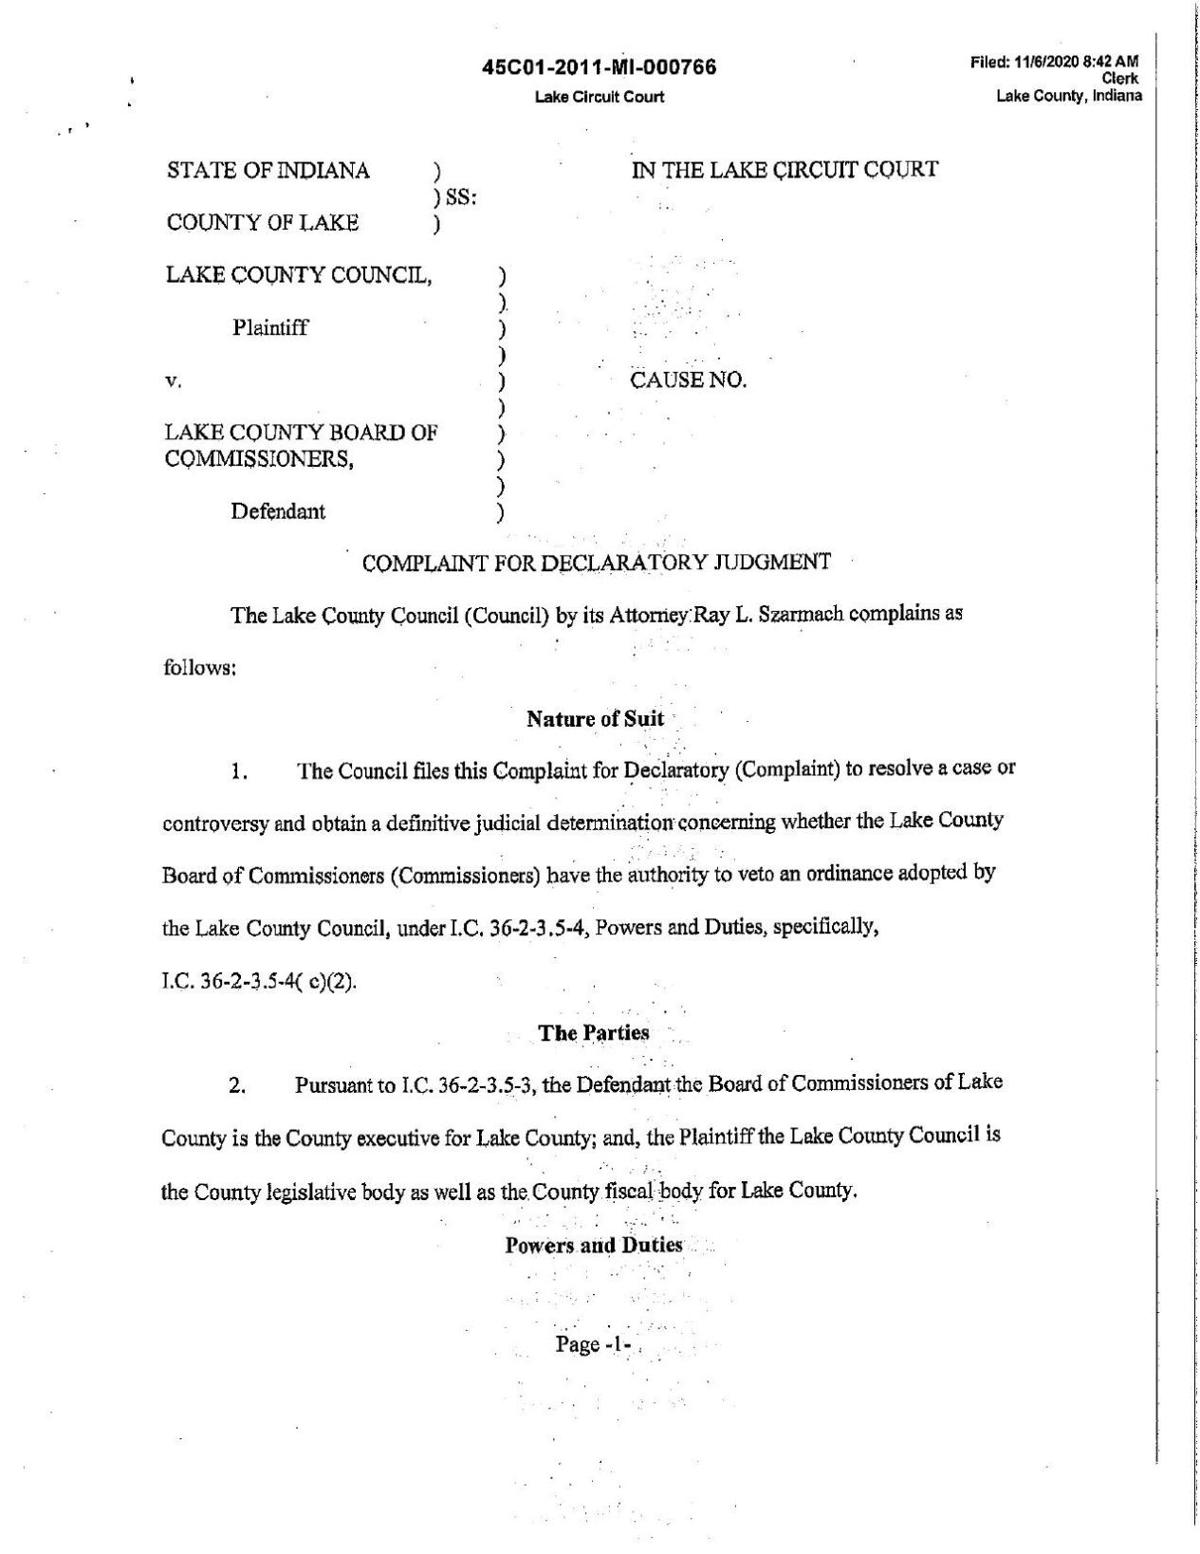 Council lawsuit: Lake County Council v. Lake County Commissioners